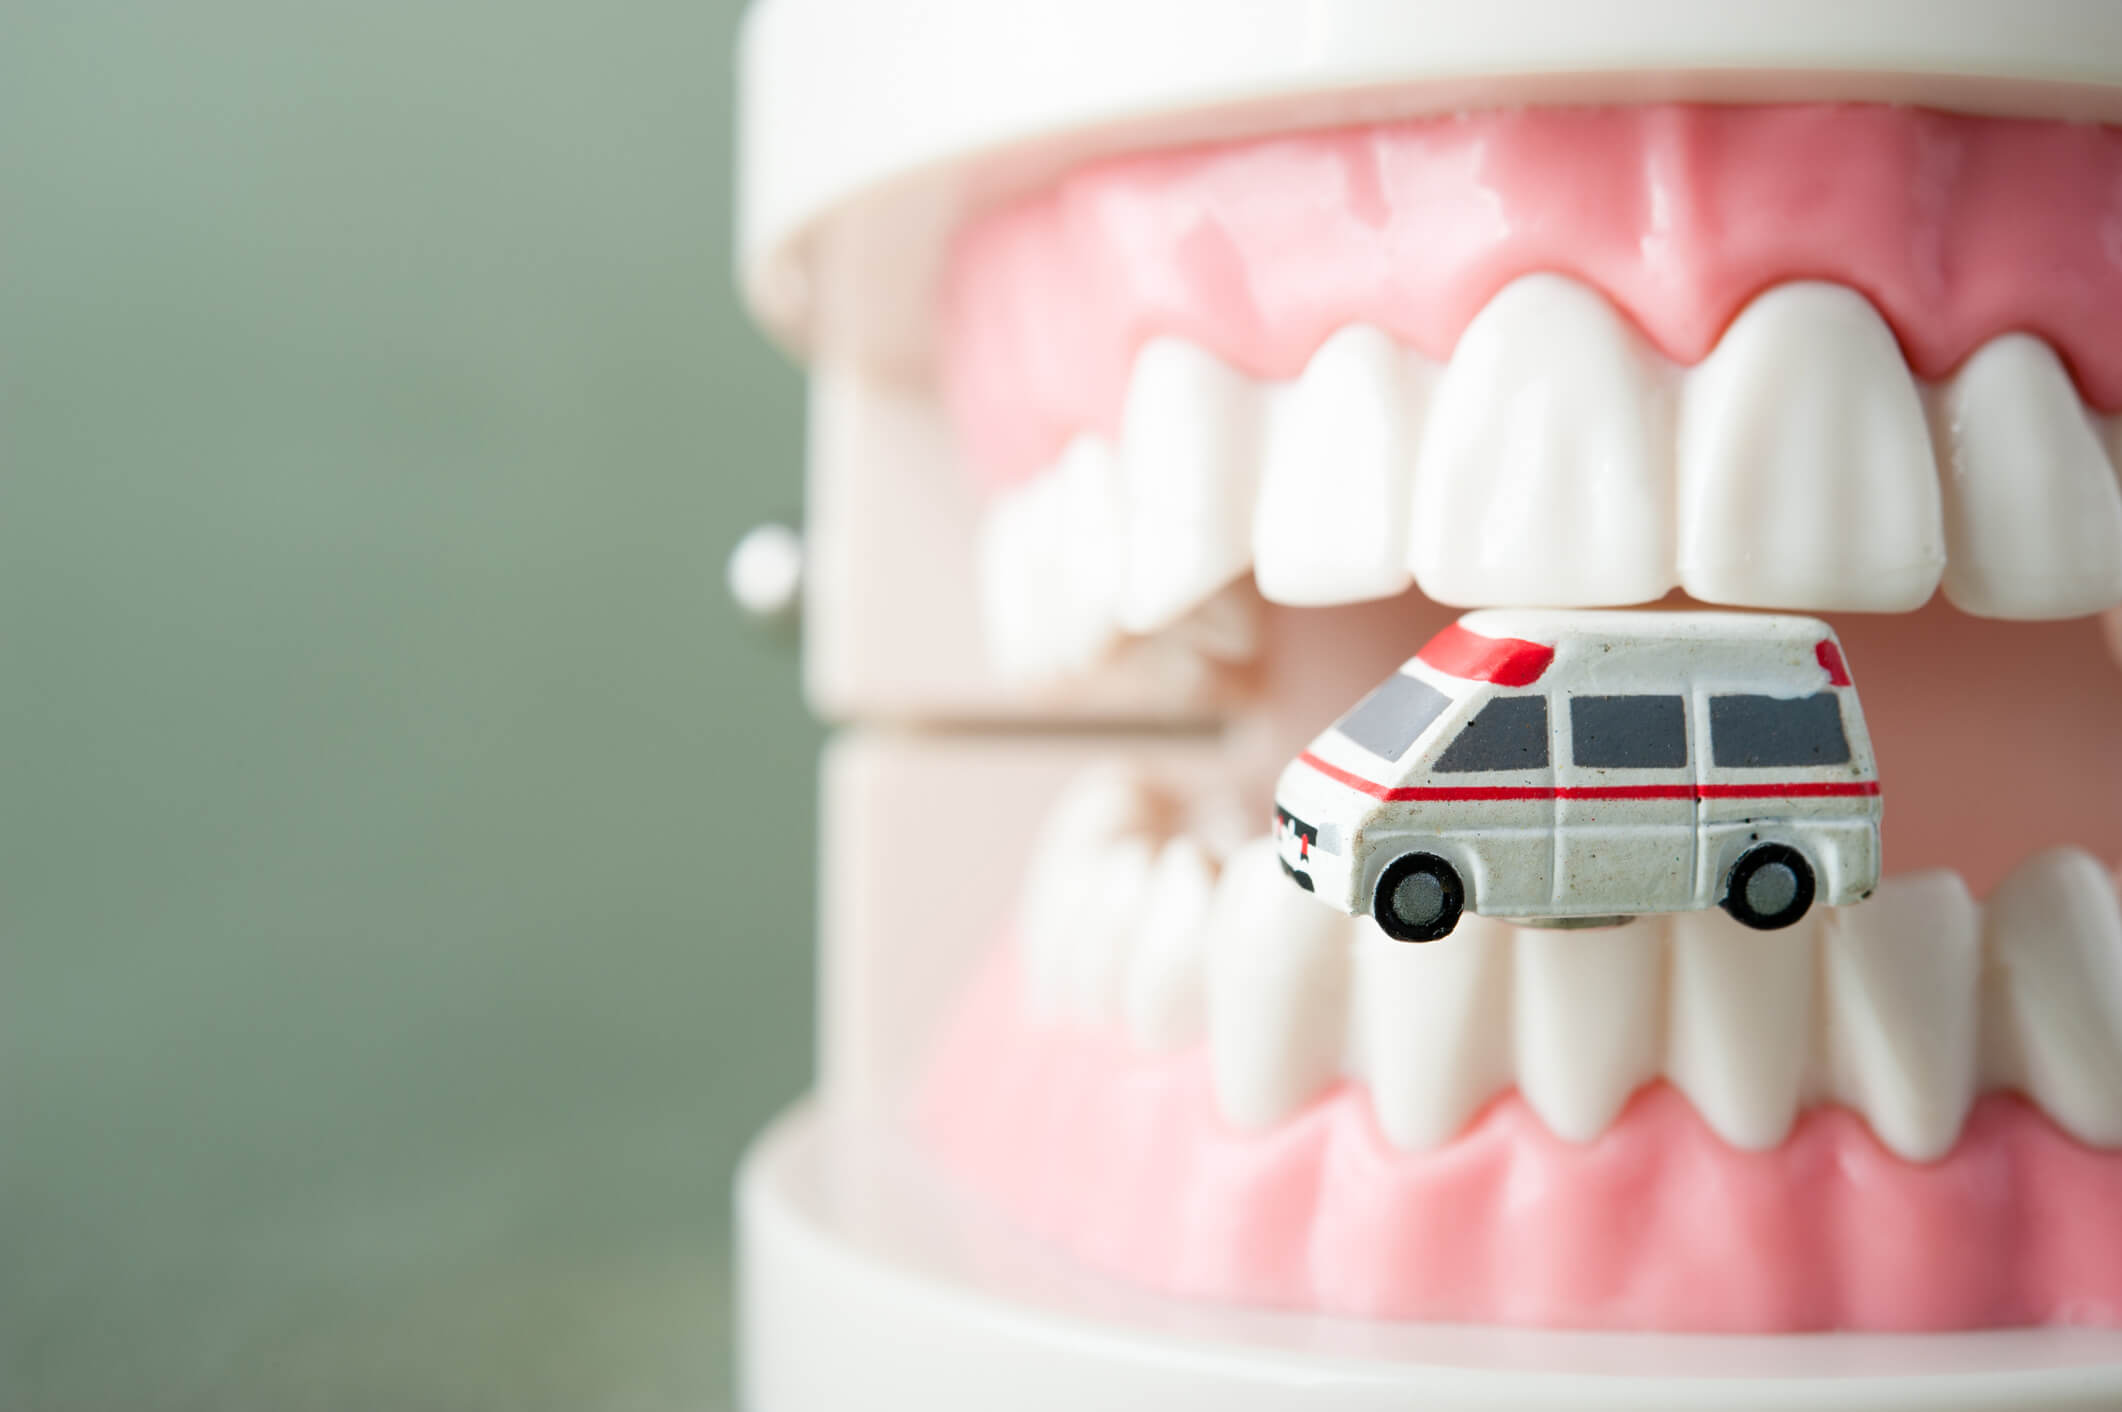 Model of teeth and miniature ambulance